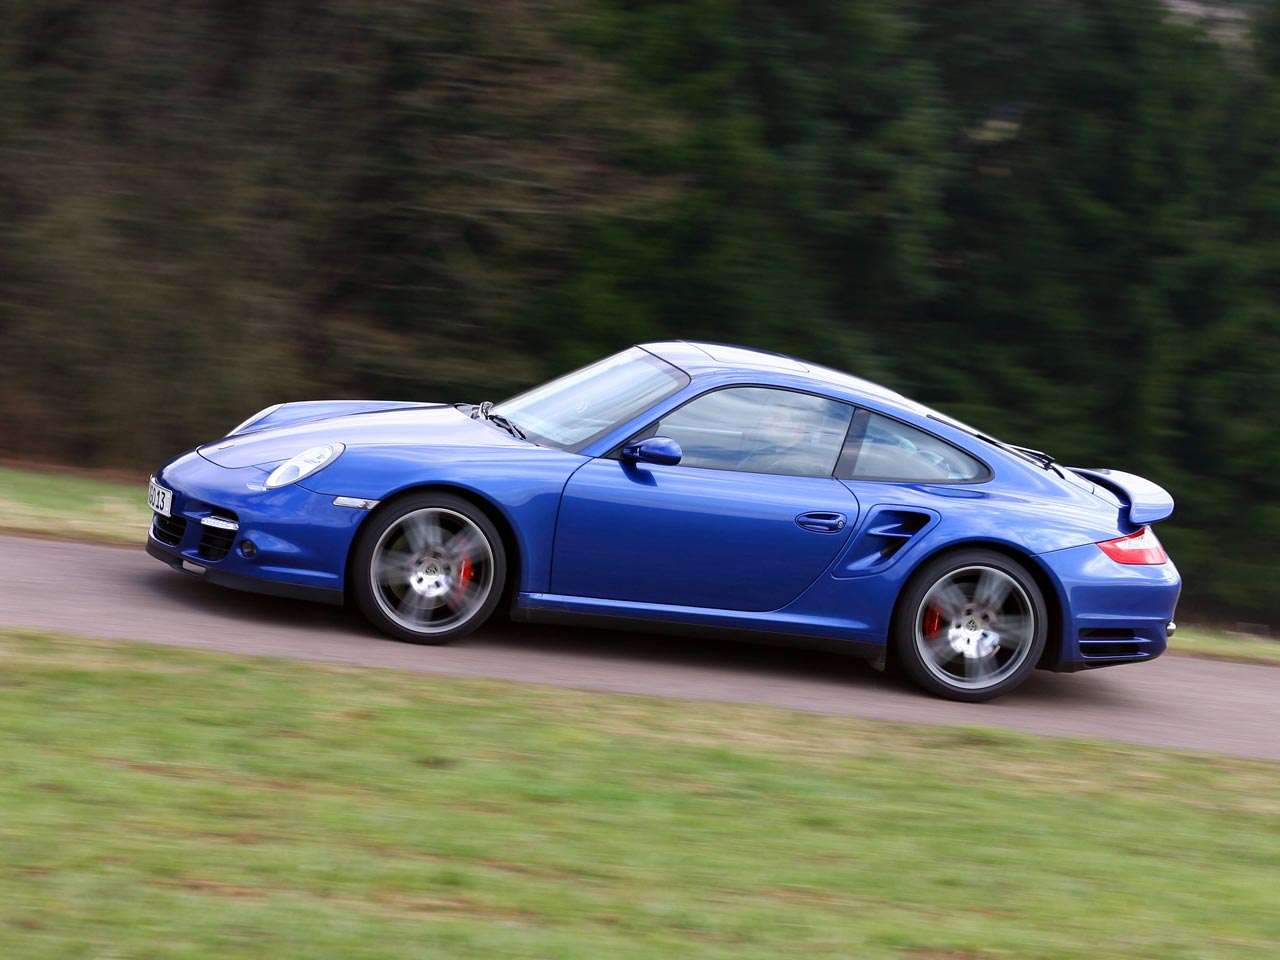 Porsche 911 Turbo (997) photo 40766